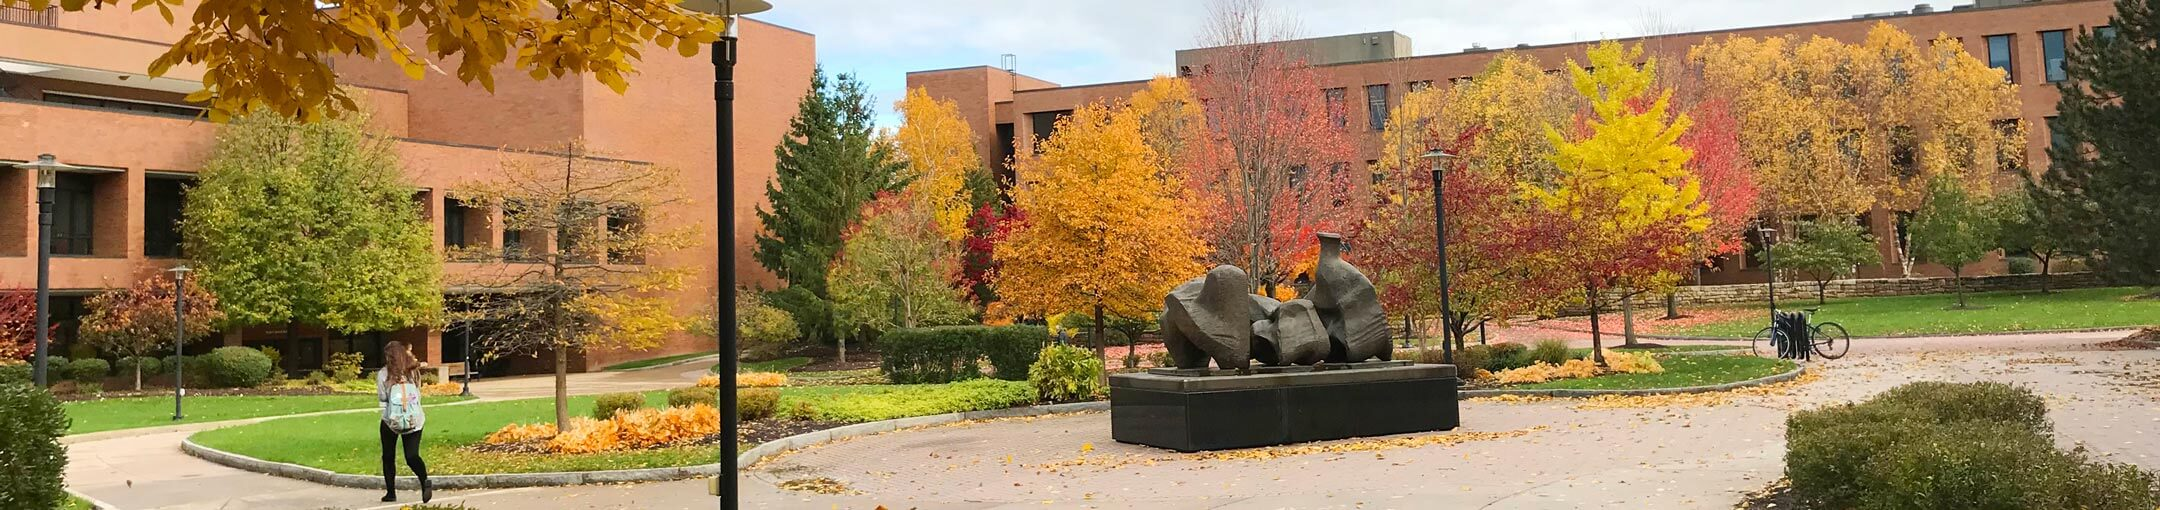 A large outdoor sculpture on campus during Autumn.